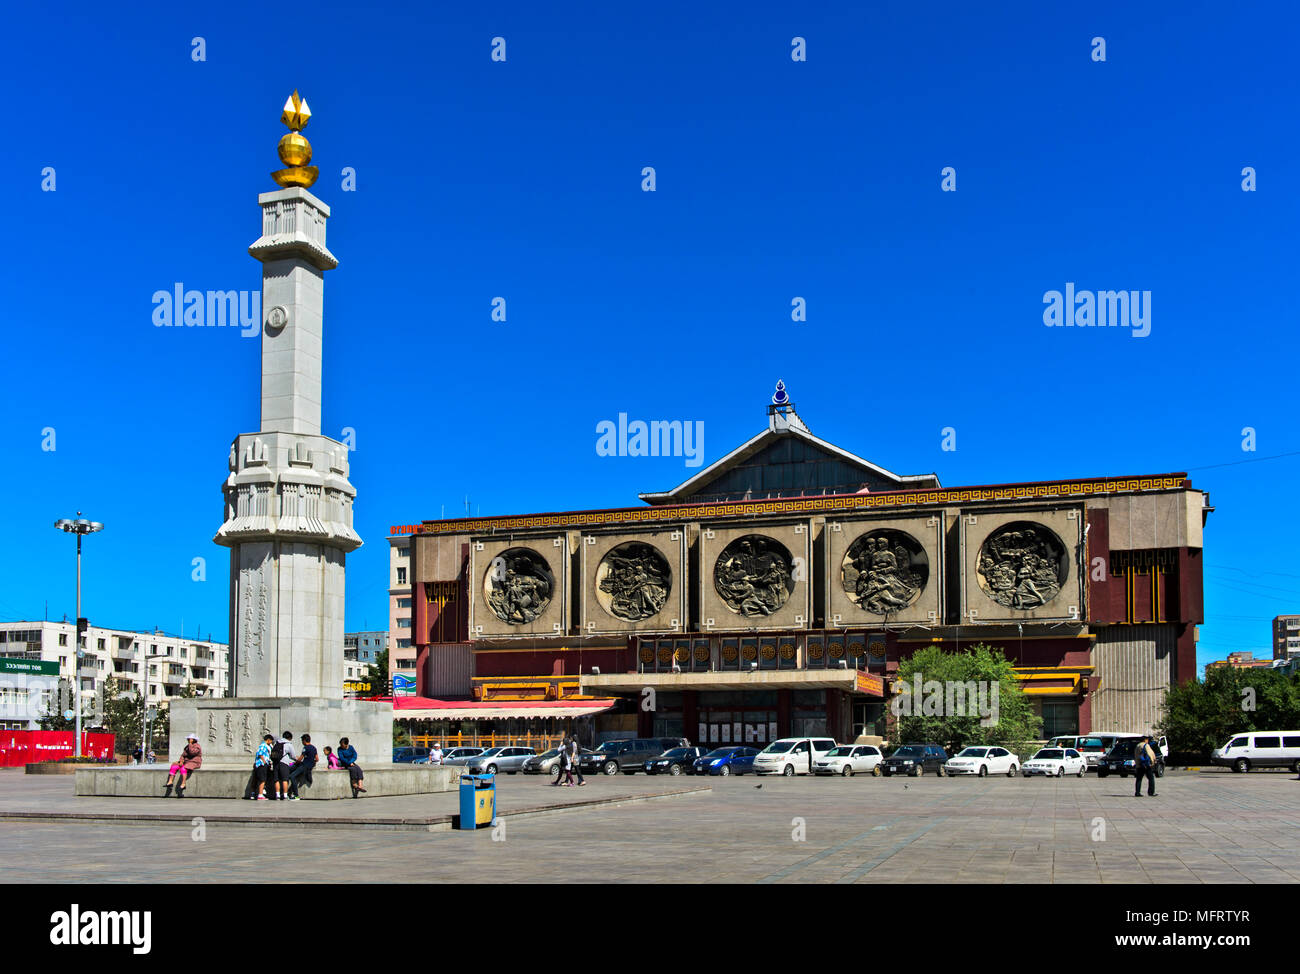 Independence Square with the Independence Monument and Central Museum for Dinosaurs, formerly Lenin Museum, Ulanbator, Mongolia - Stock Image